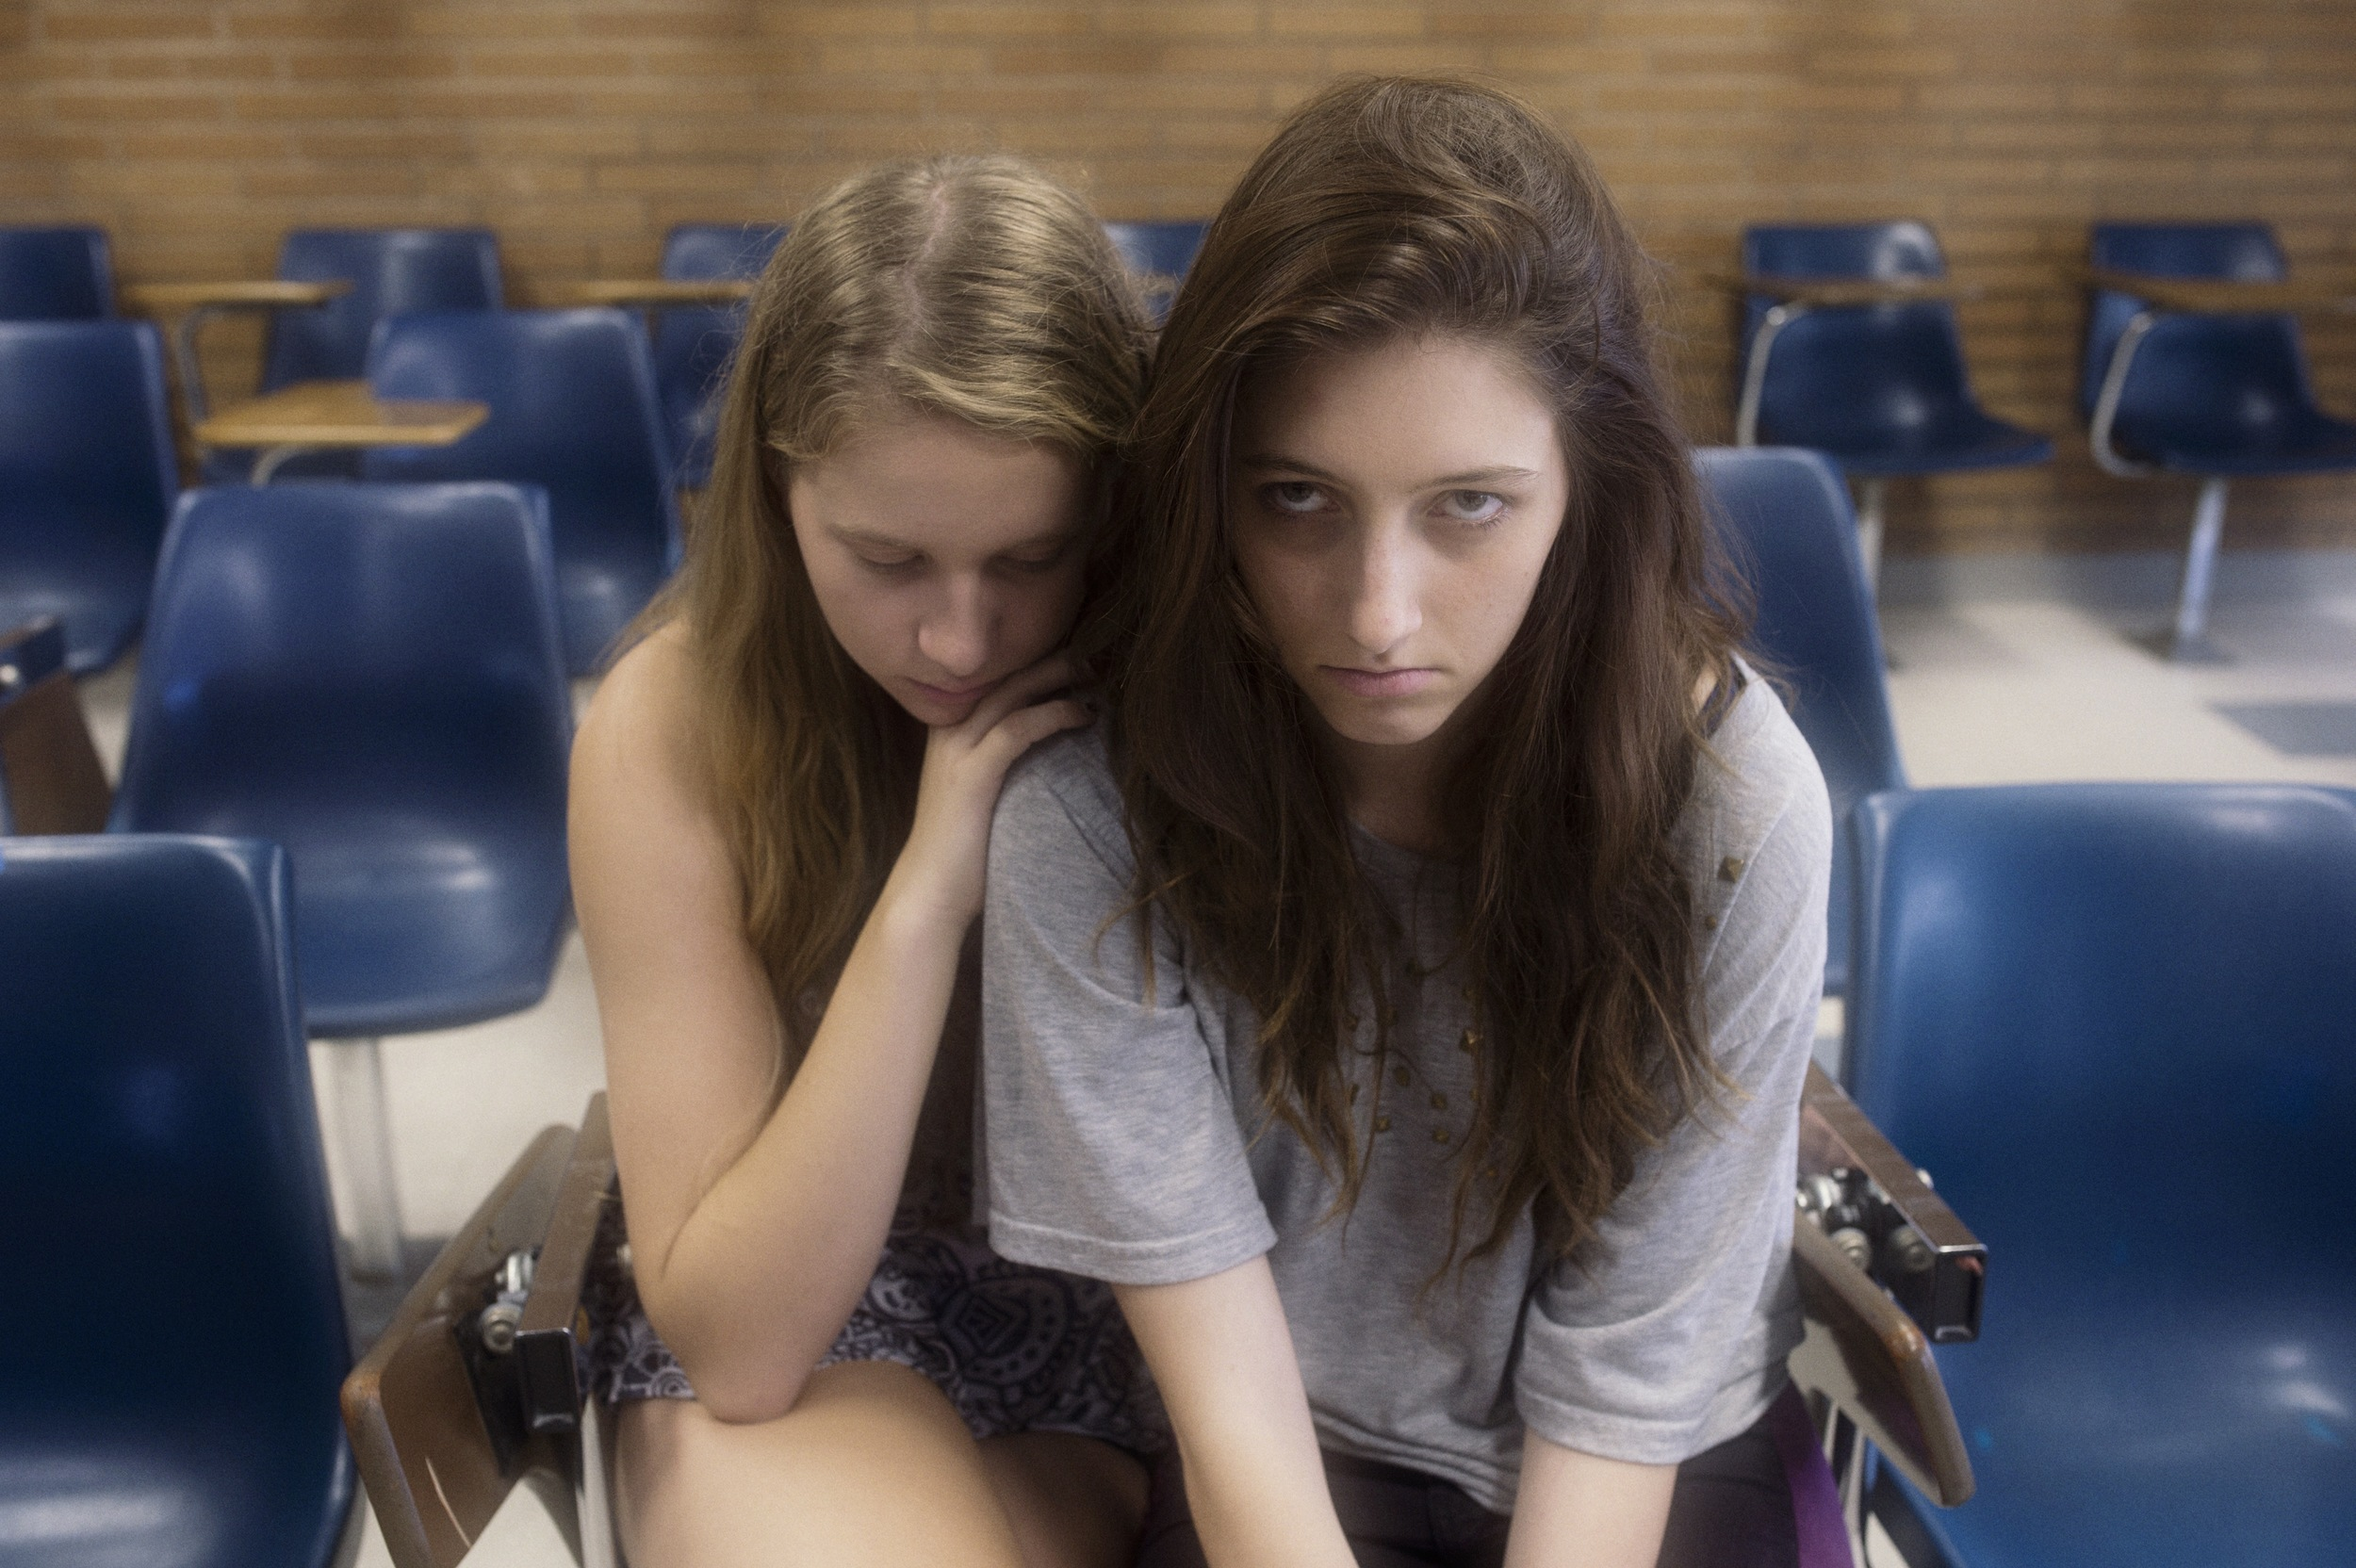 The few girls who survived the virus outbreak are now trapped into the Pink Zone. Most of them, like Joan (Tara Leahy, left) and Nicole (Violet Leona Paley, right) lost their parents.